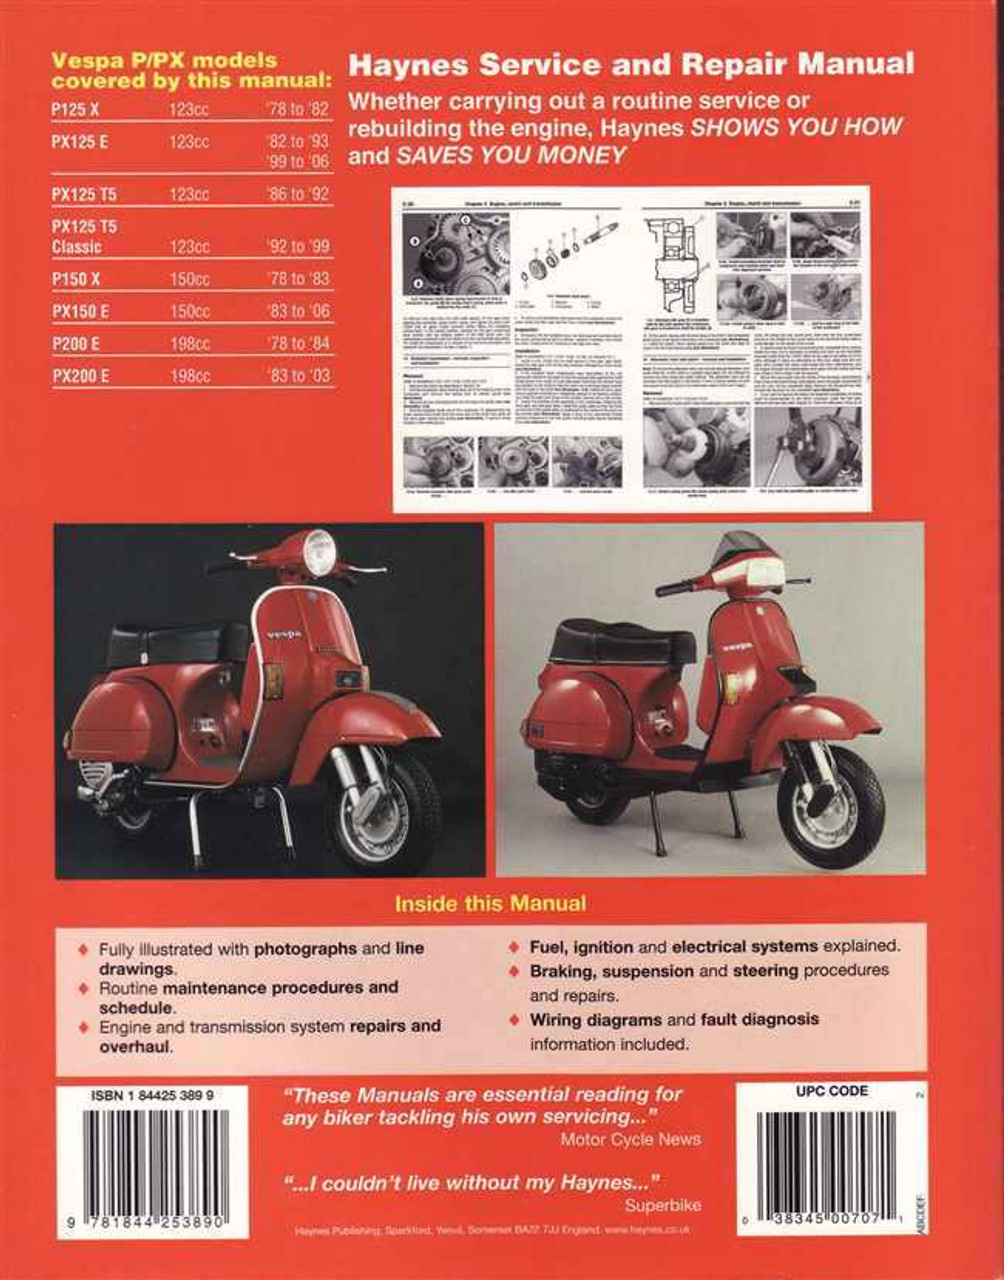 General Merchandise in addition manual vespa p 125 x moreover nanophotonics devices circuits and systems ebook besides matiz owners manual as well SimpliSafe upgrades the DIY home security experience   Utter Buzz further s   ewiringdiagram herokuapp   post mtd manuals 2019 01 likewise manual vespa p 125 x further mini one user manual further 001 MH0712 Cover Sub in addition scotts speedy green spreader manual ebook moreover 1994 Ford F 250 Fuse Box   Wiring Library. on ford f super duty wiring schematic free download oasis fuse box diagram on sensor locations van location electrical systems diagrams e smart diy enthusiasts edge horn wire center 2009 e450